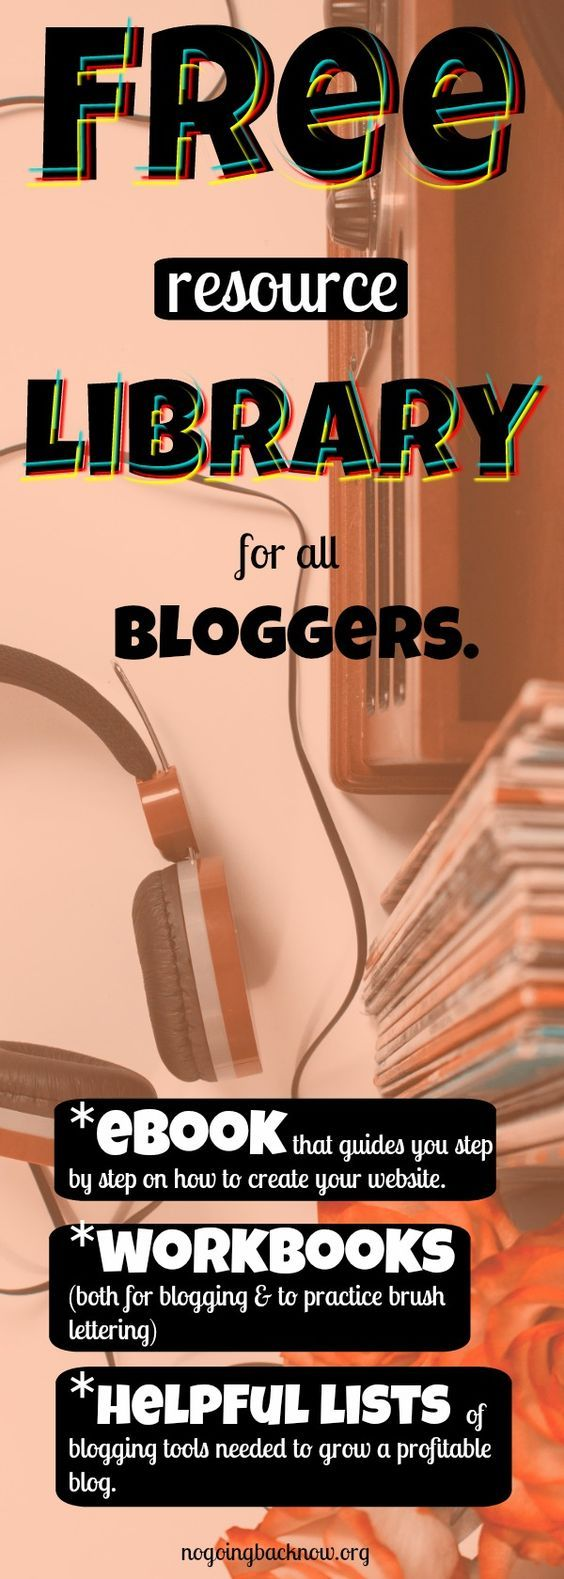 This resource library is for bloggers of all niches. Ebook, workbooks, stock photo sources, graphic design sources, Pinterest Group board list, and so much more. #makemoneyonline #beyourownboss #wahm